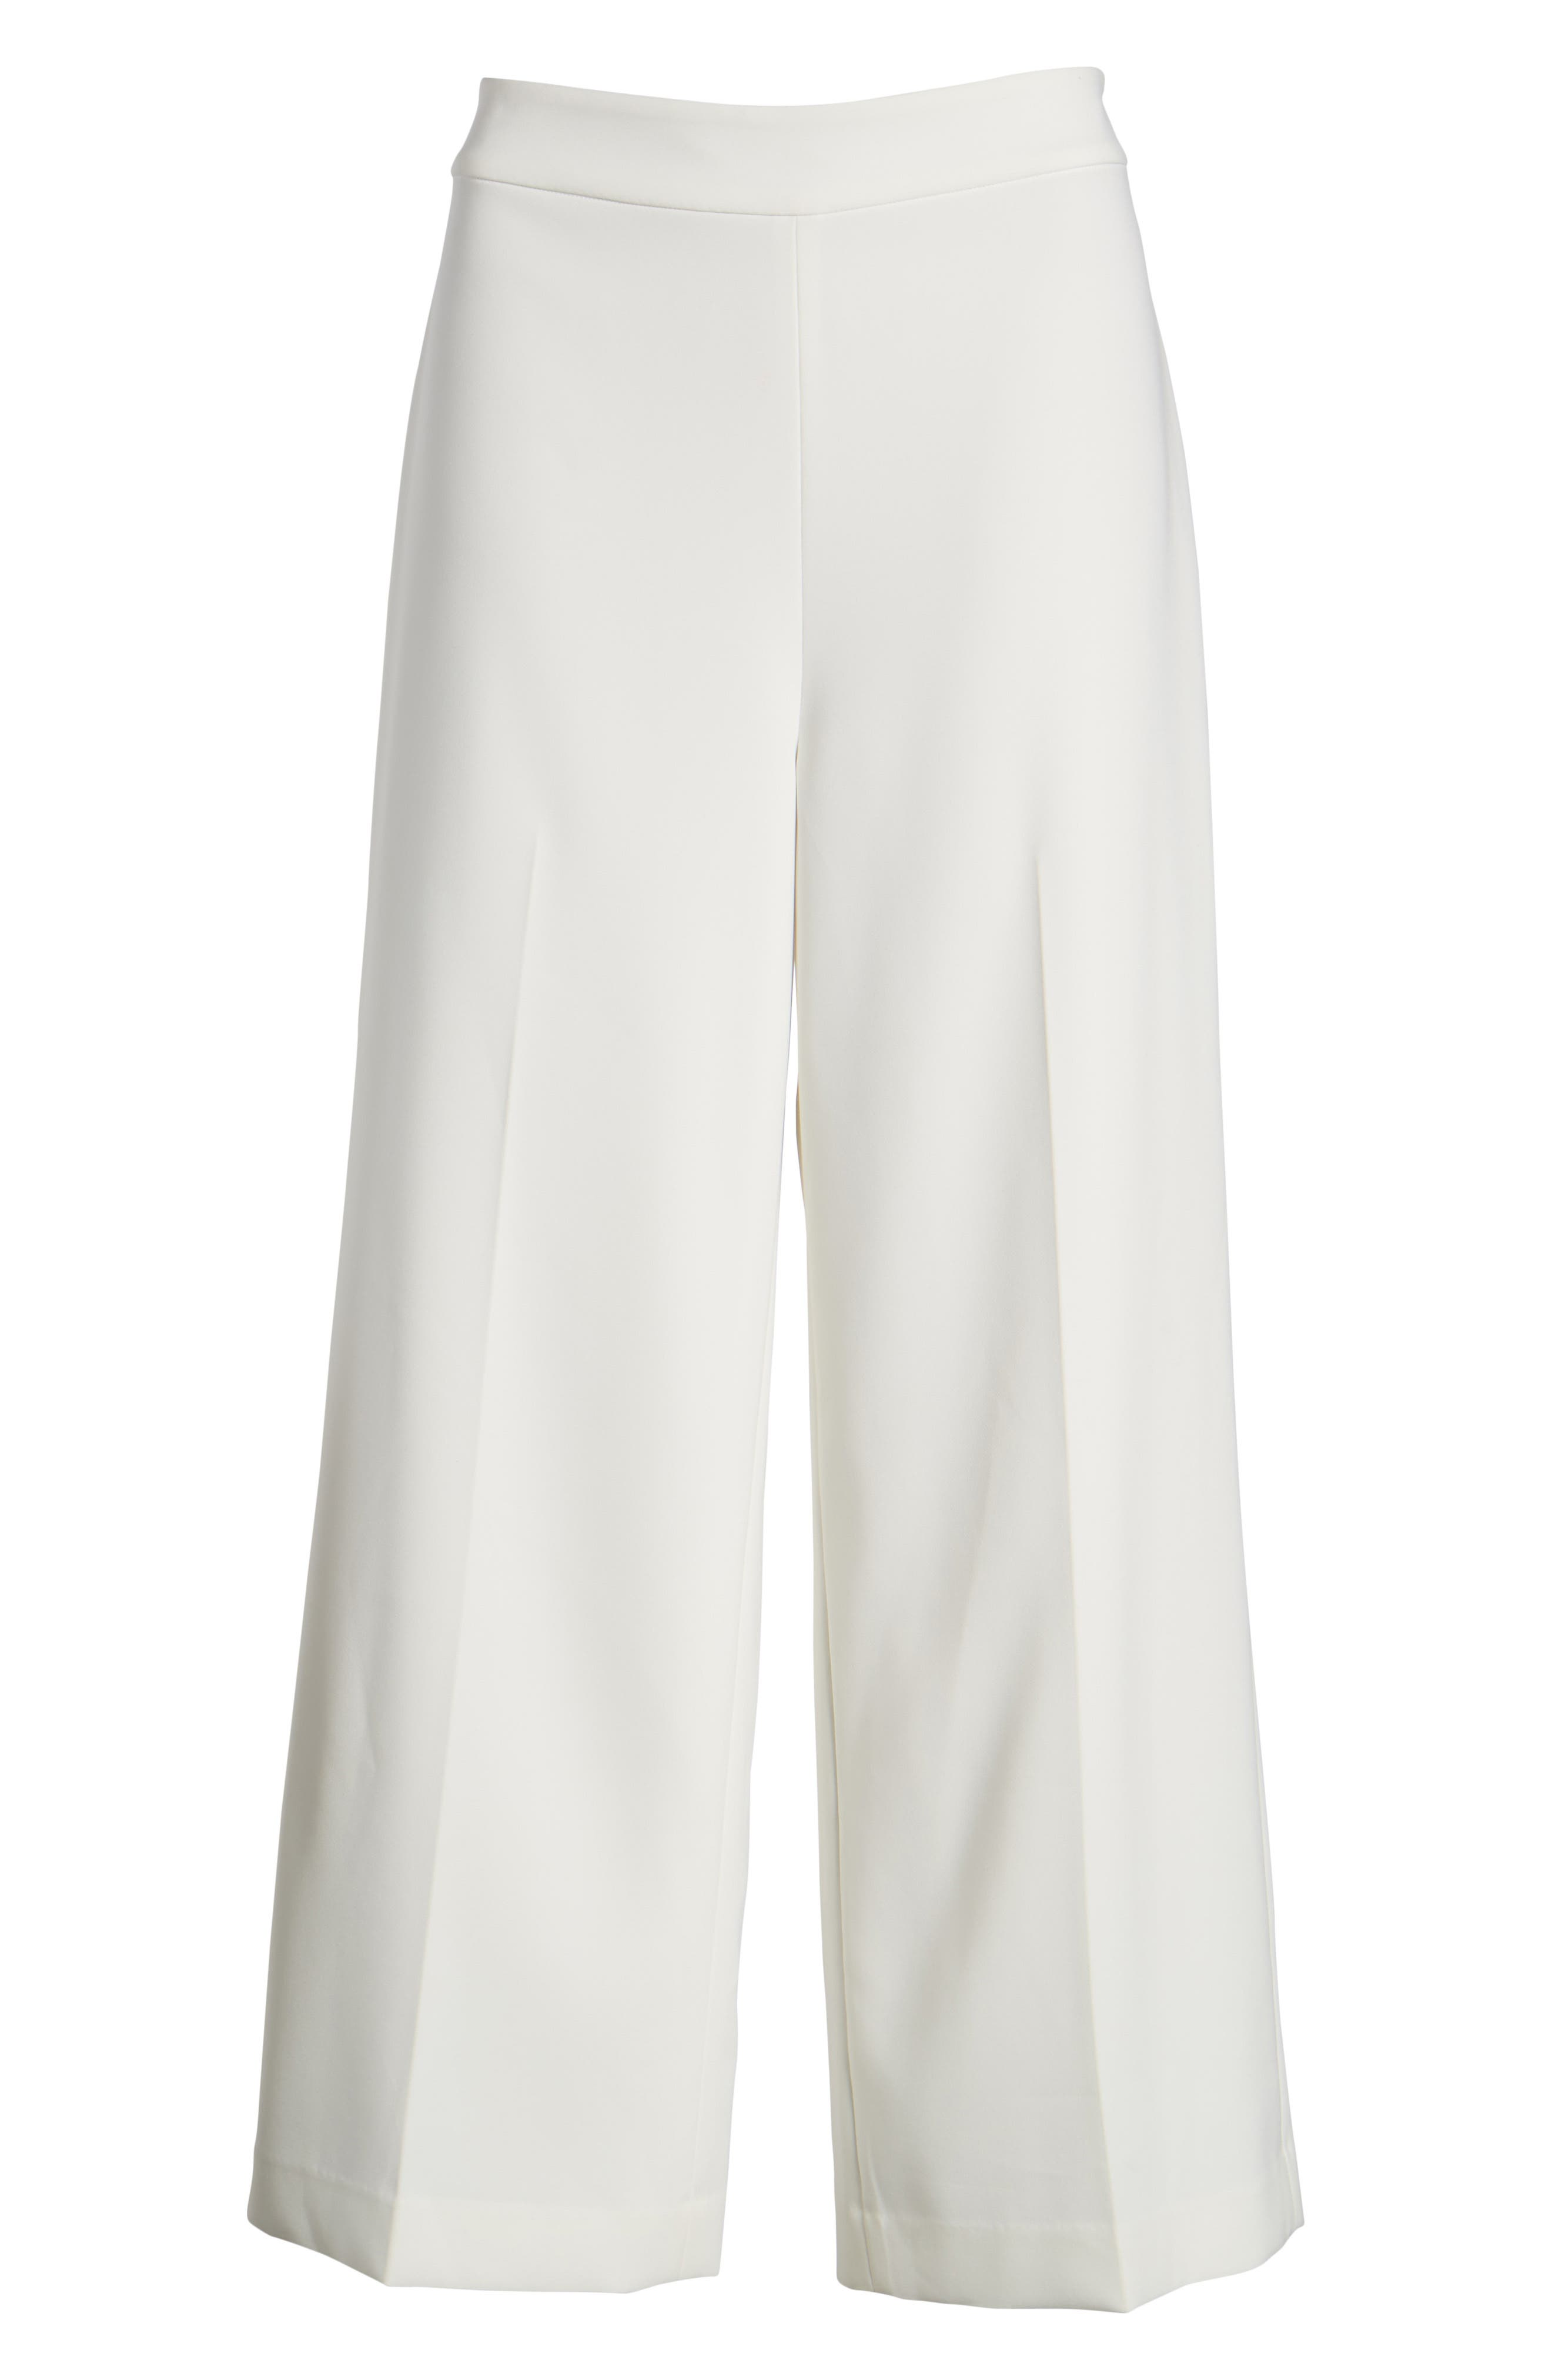 High-Waist Crop Pants,                             Alternate thumbnail 7, color,                             New Ivory